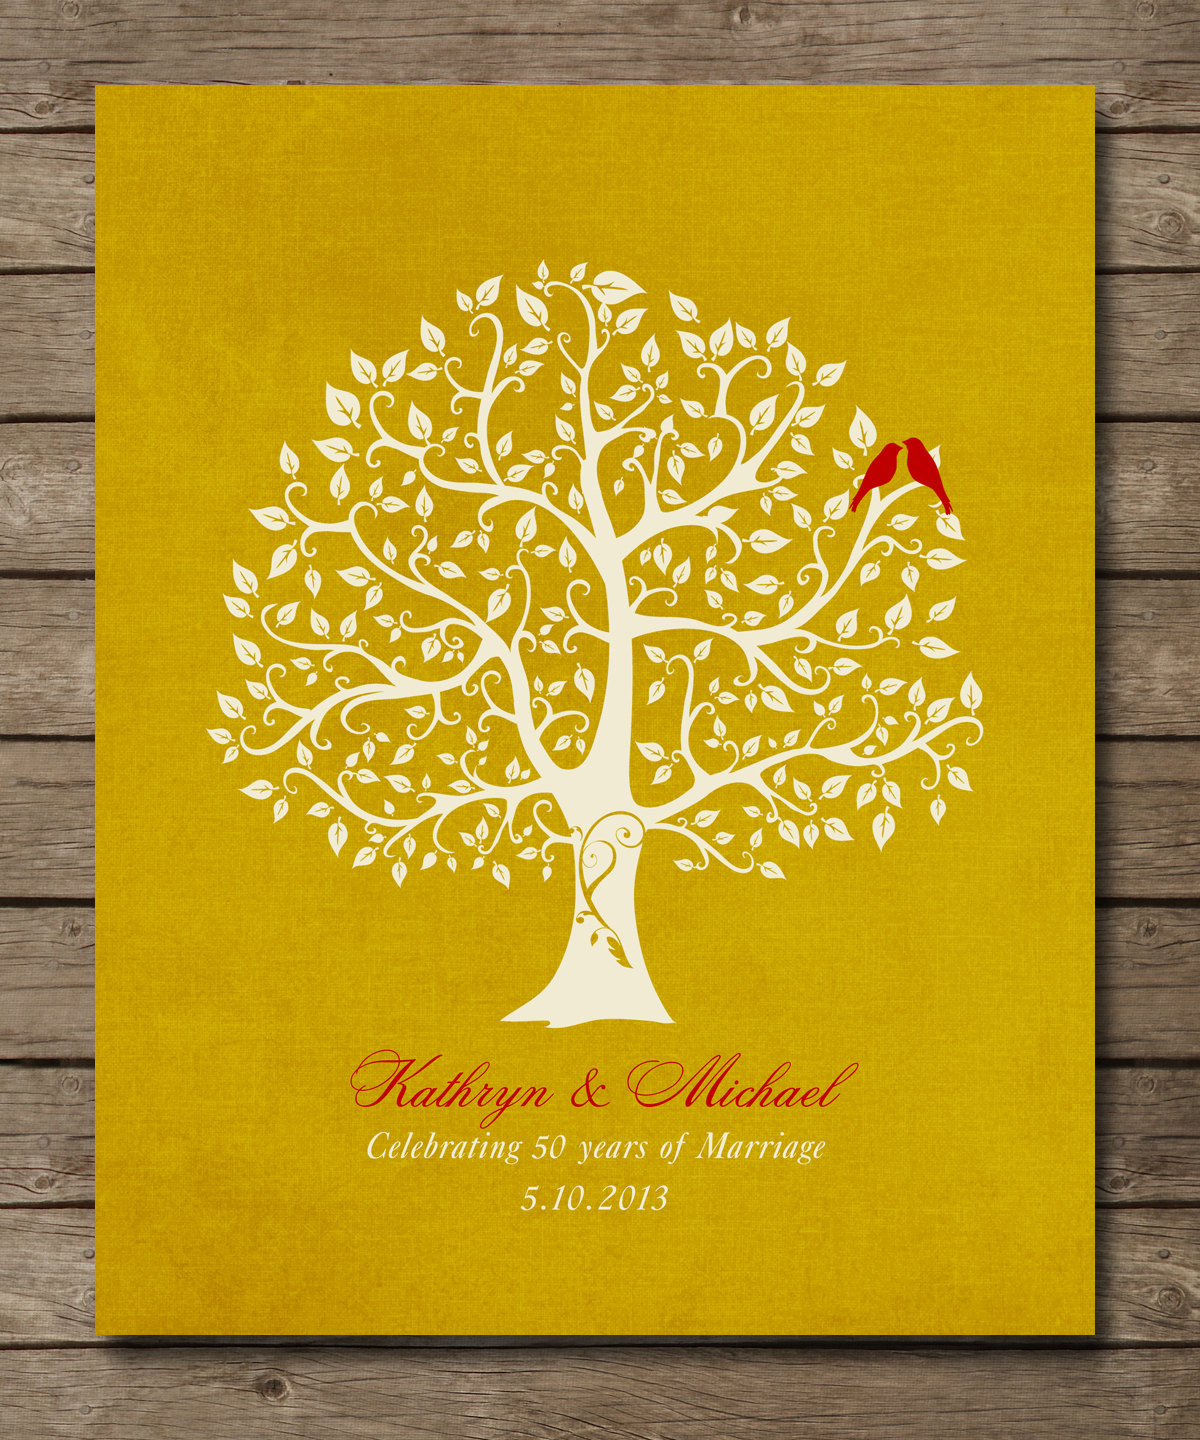 Best ideas about Golden Wedding Anniversary Gift Ideas For Parents . Save or Pin 50th Wedding Anniversary Tree Gift Golden by WordsWorkPrints Now.